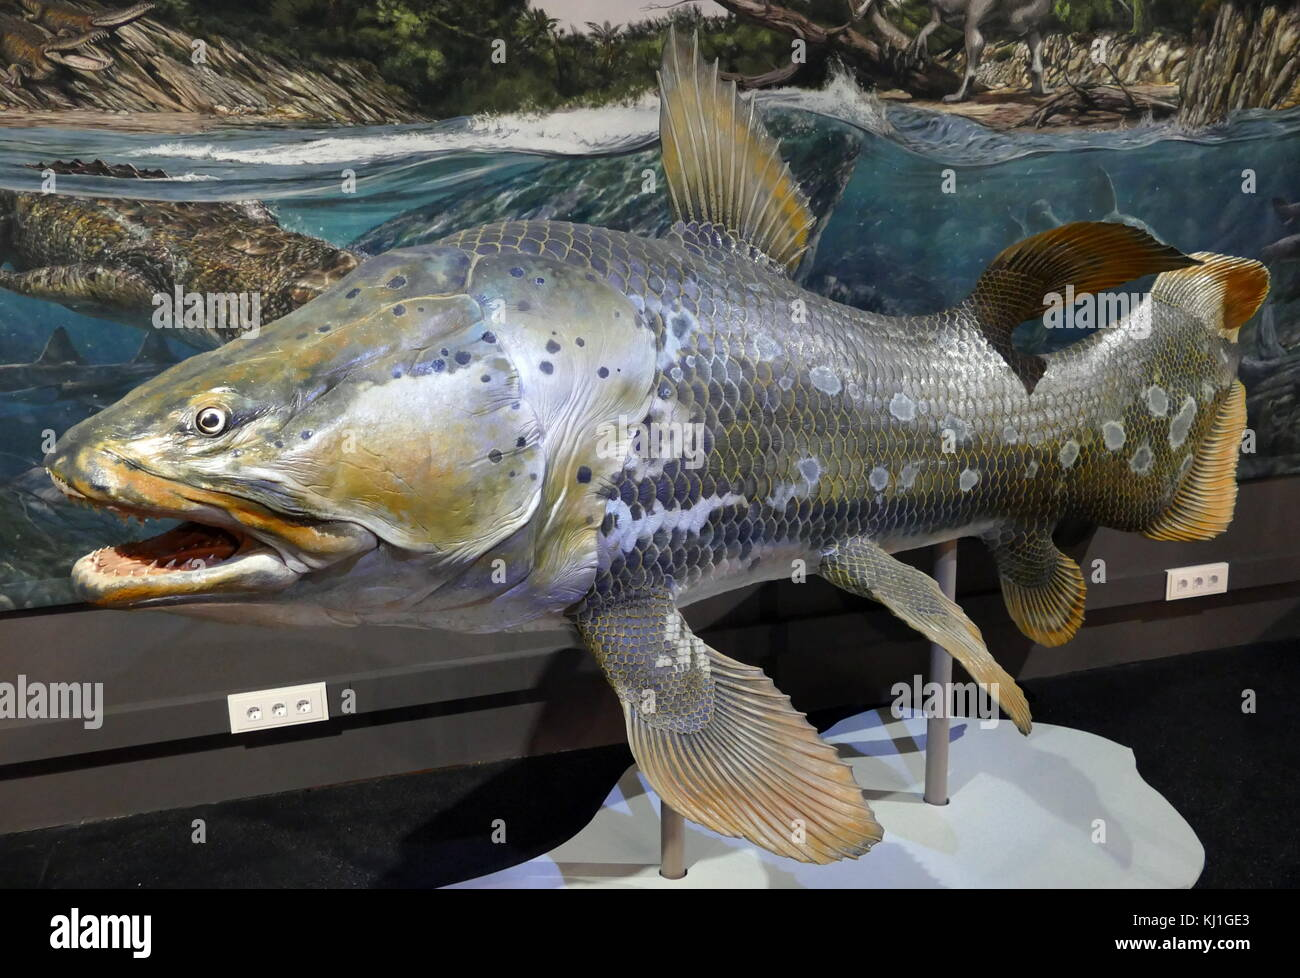 Mawsonia lavocati was an extinct genus of prehistoric coelacanth fish, and the largest of this group, up to several - Stock Image